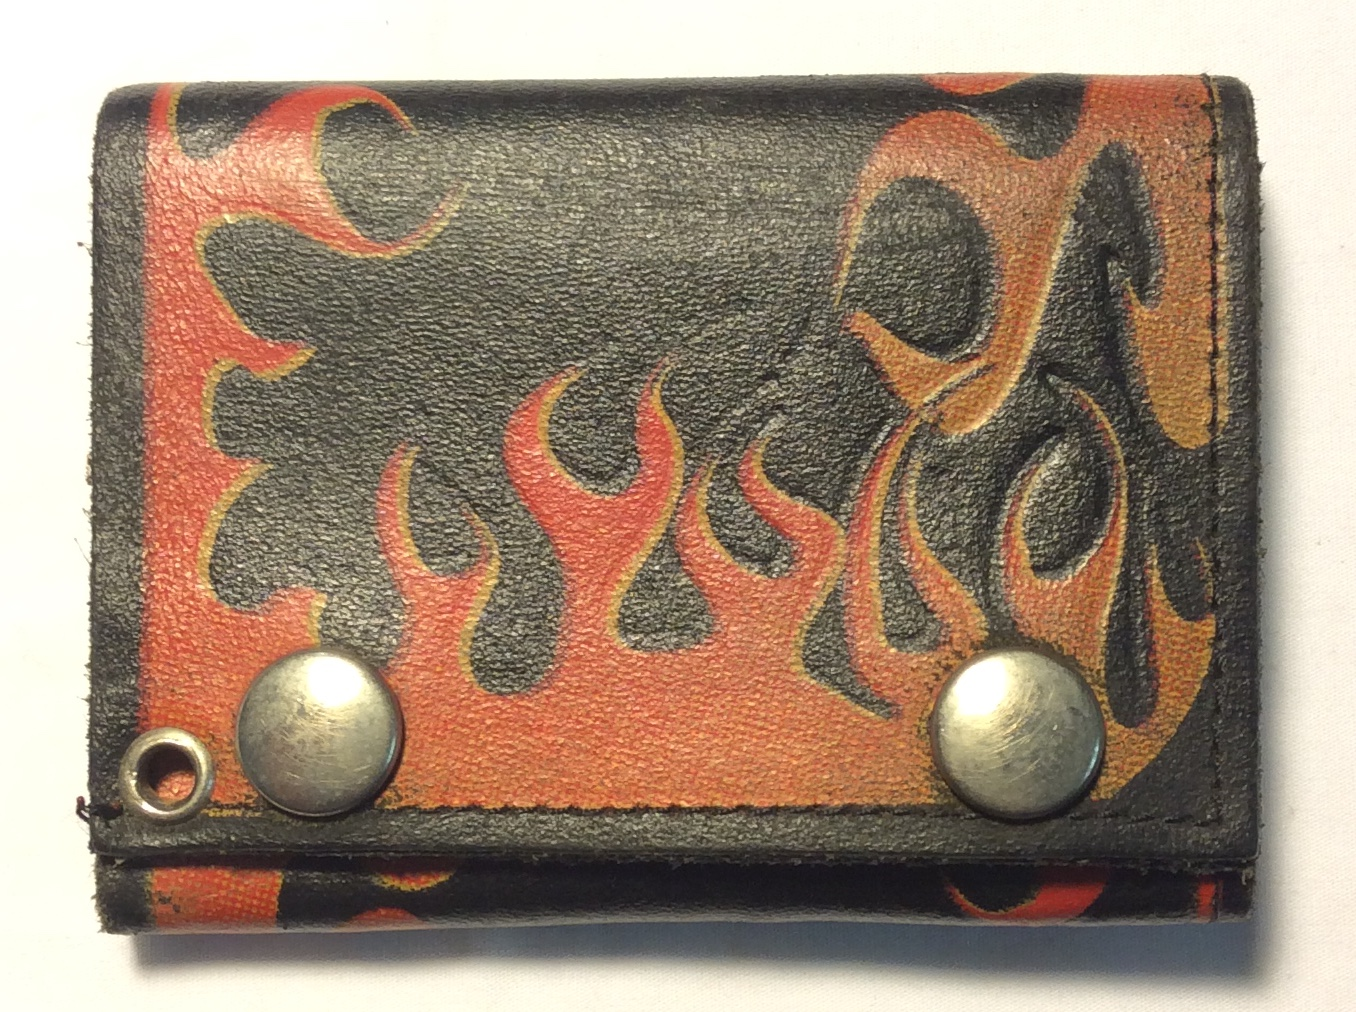 Black leather with red, orange